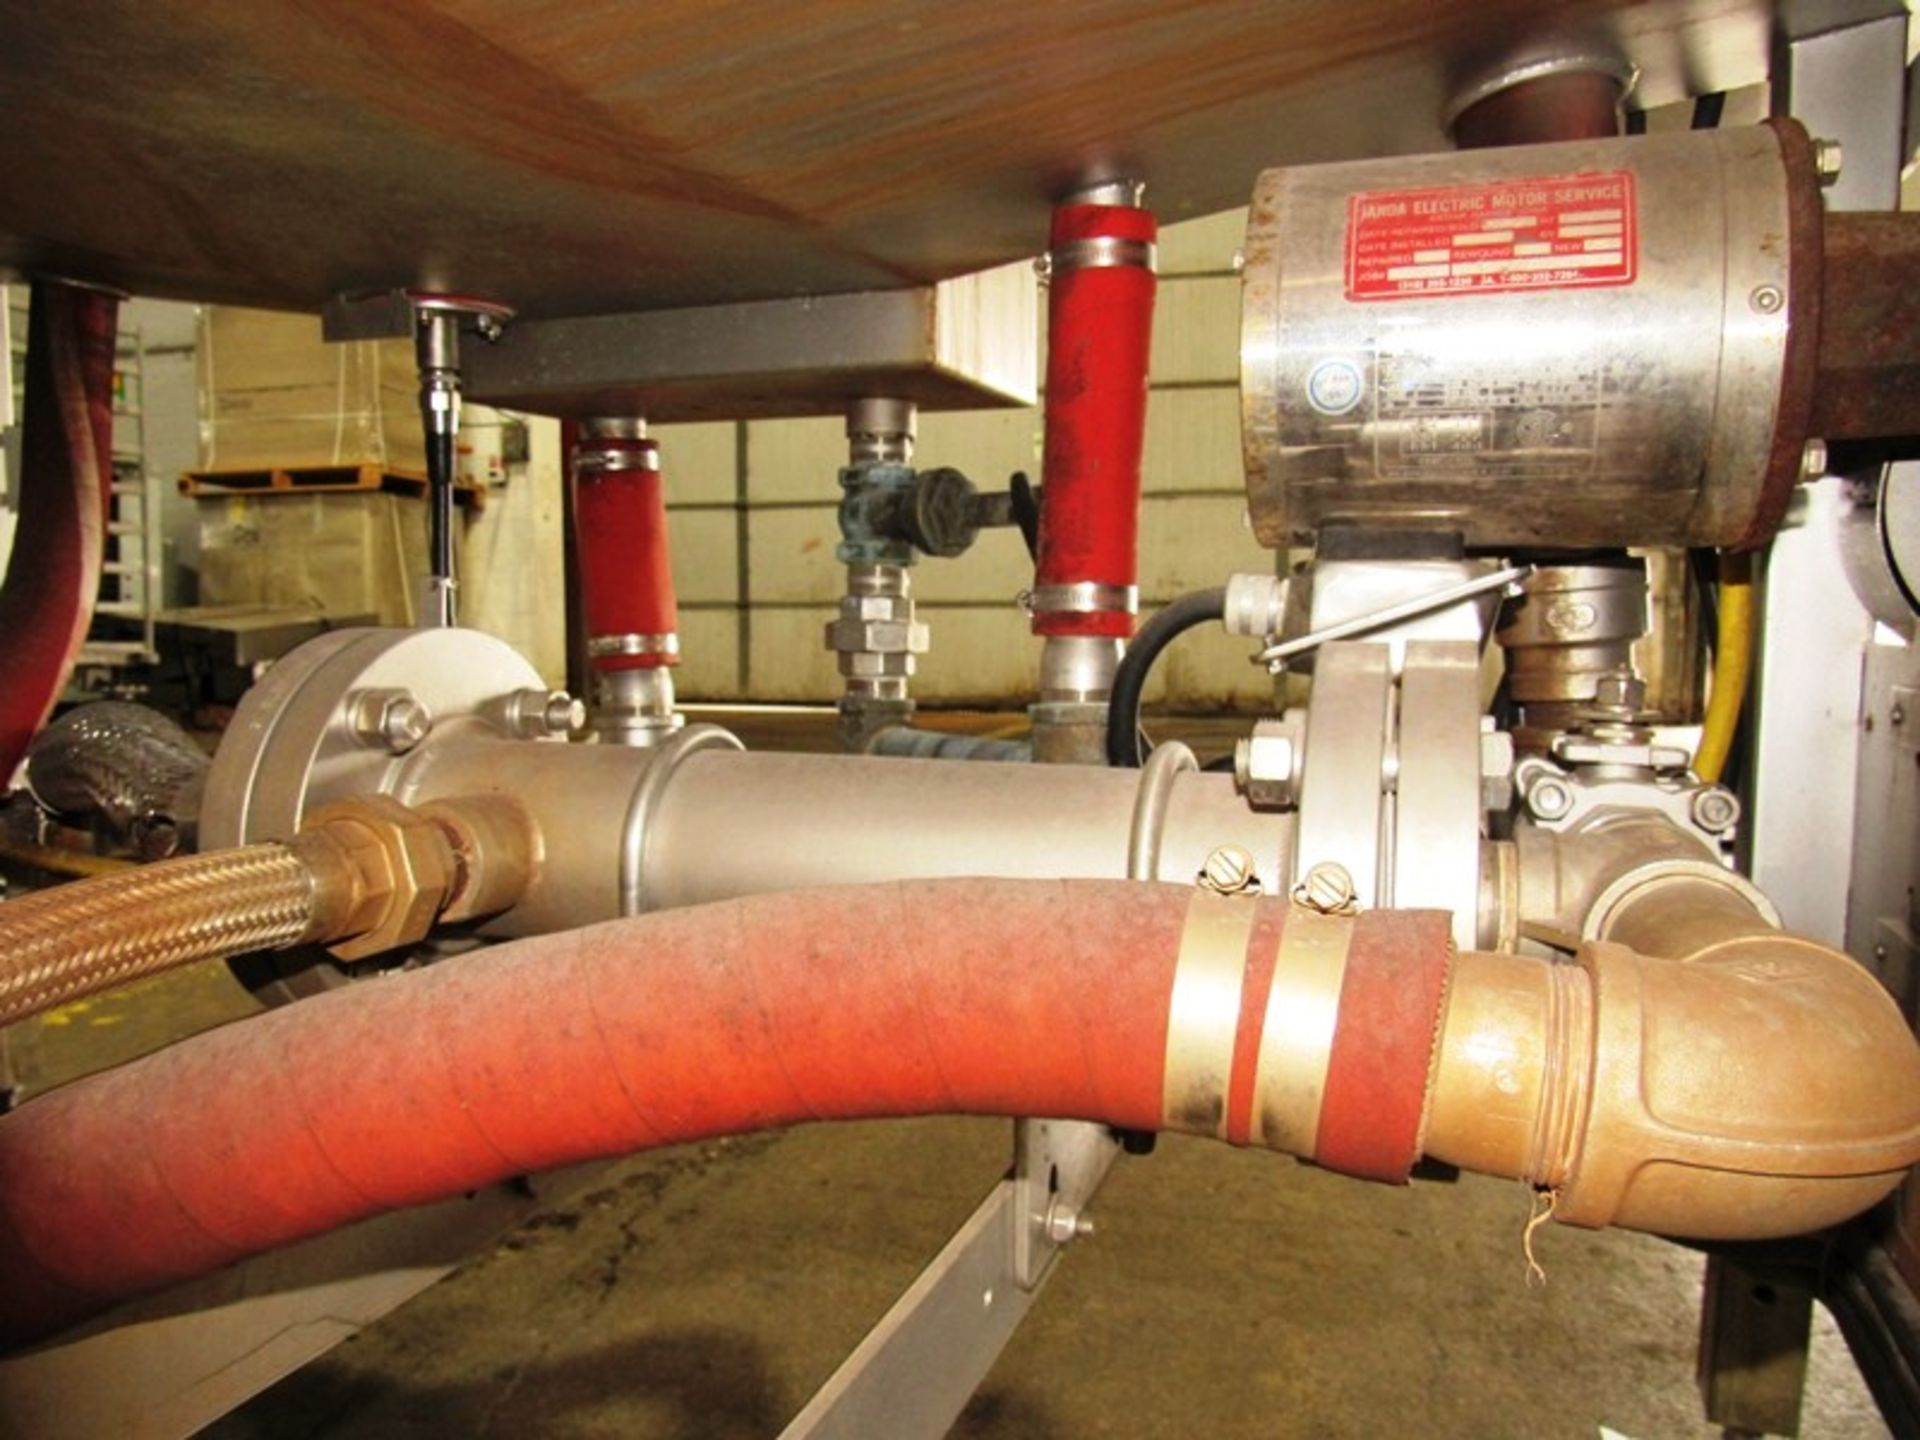 """Cryovac Mdl ST101 Steam/Hot Water Shrink Tunnel, 24"""" Wide X 18"""" Tall X 77"""" Long tunnel, 2 h.p. - Image 8 of 8"""